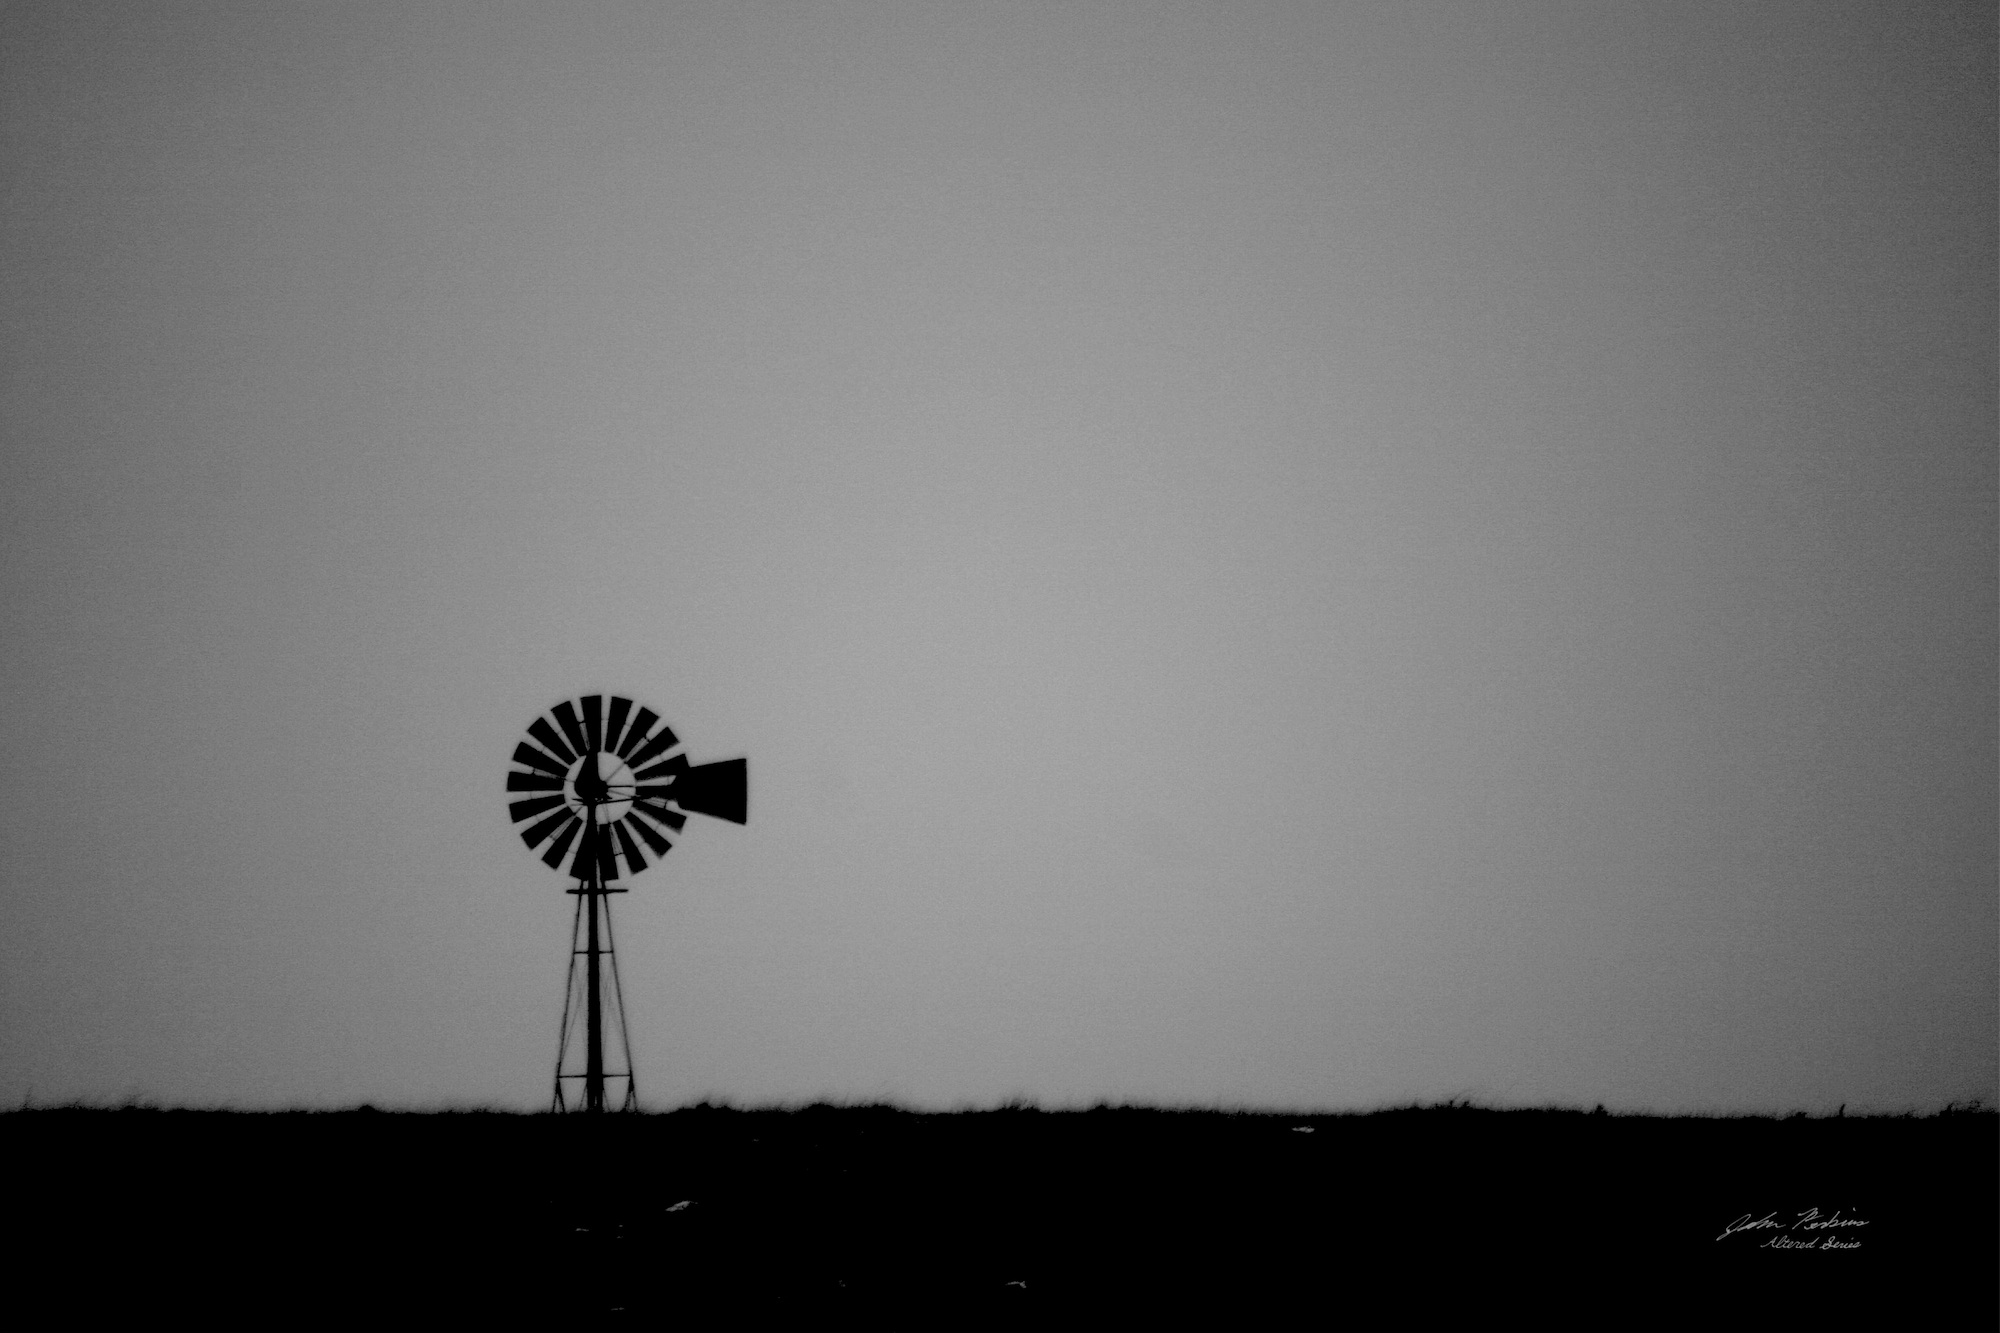 Windmill Stillness